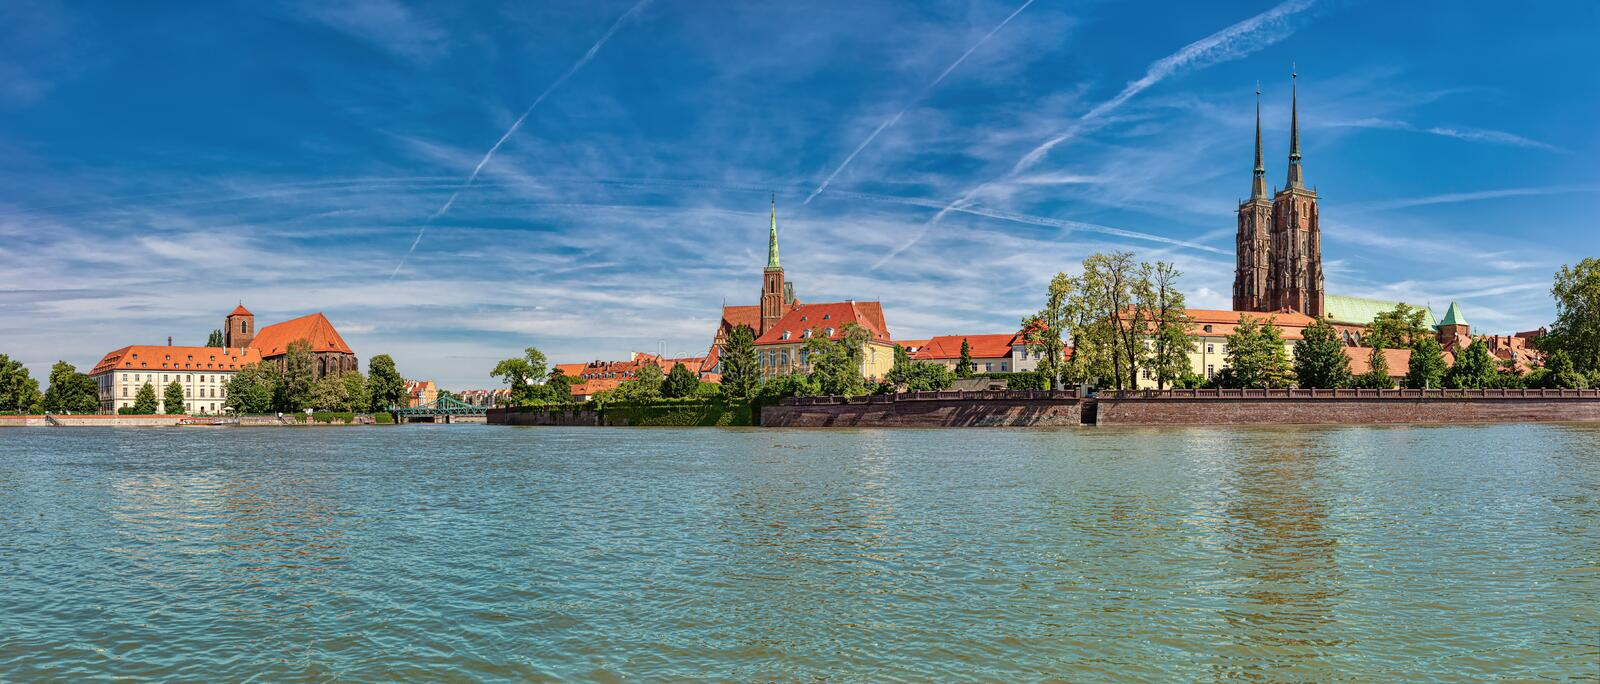 Island Tumski and Odra River in Wroclaw. Wroclaw Old Town. Cathedral Island Ostrow Tumski is the oldest part of the city. Cathedral of St. John and Blessed royalty free stock photos